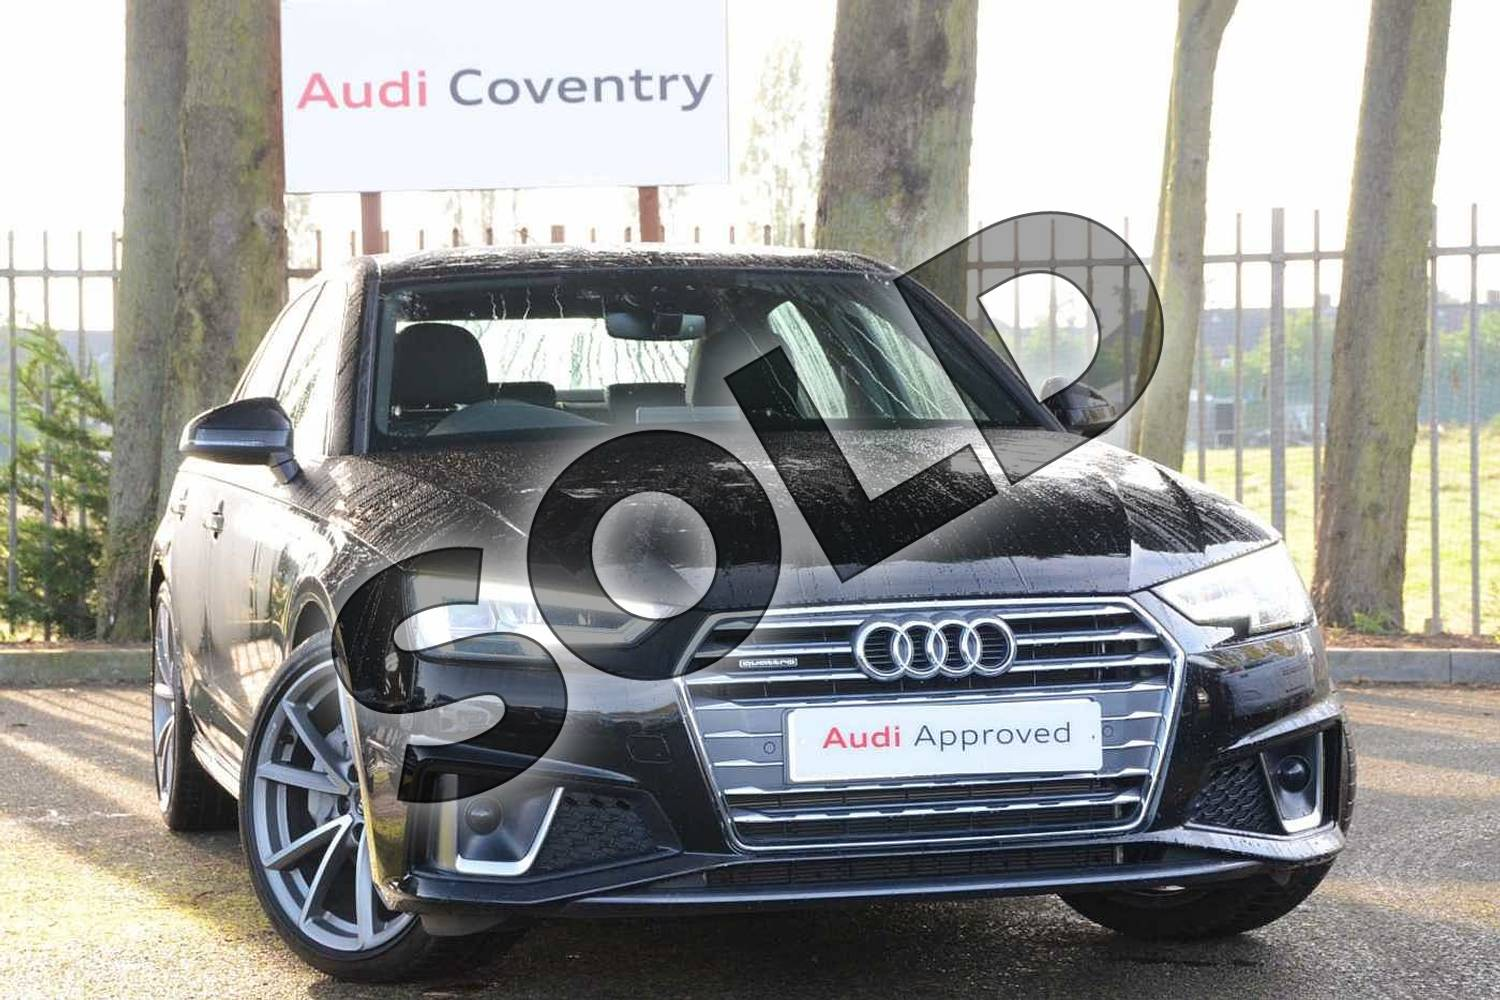 2019 Audi A4 Diesel Saloon 40 TDI Quattro S Line 4dr S Tronic in Myth Black Metallic at Coventry Audi